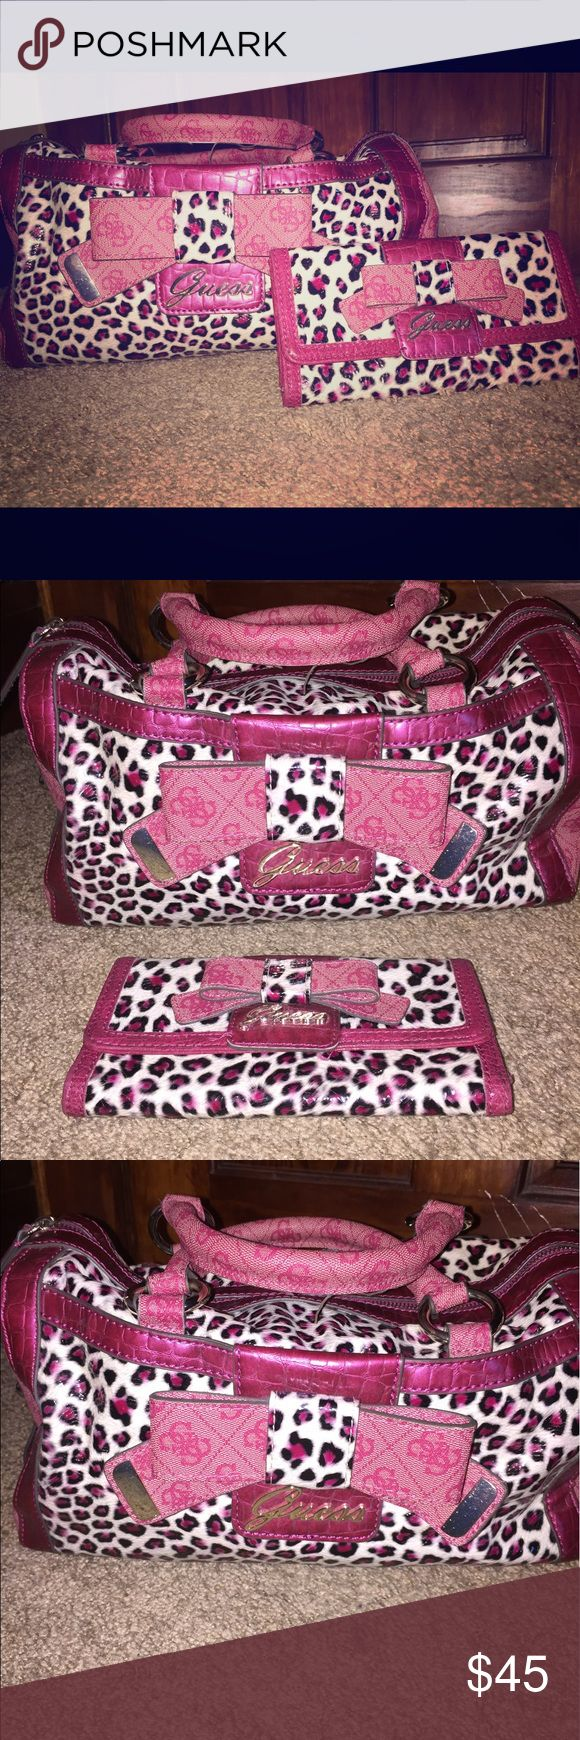 GUESS Purse and Wallet SET - pink/ white leopard GUESS Purse and Wallet SET - pink/ white leopard print, LARGE 💼 wallet to match, great condition, small stain in interior, MAKE AN OFFER :) Guess Bags Shoulder Bags